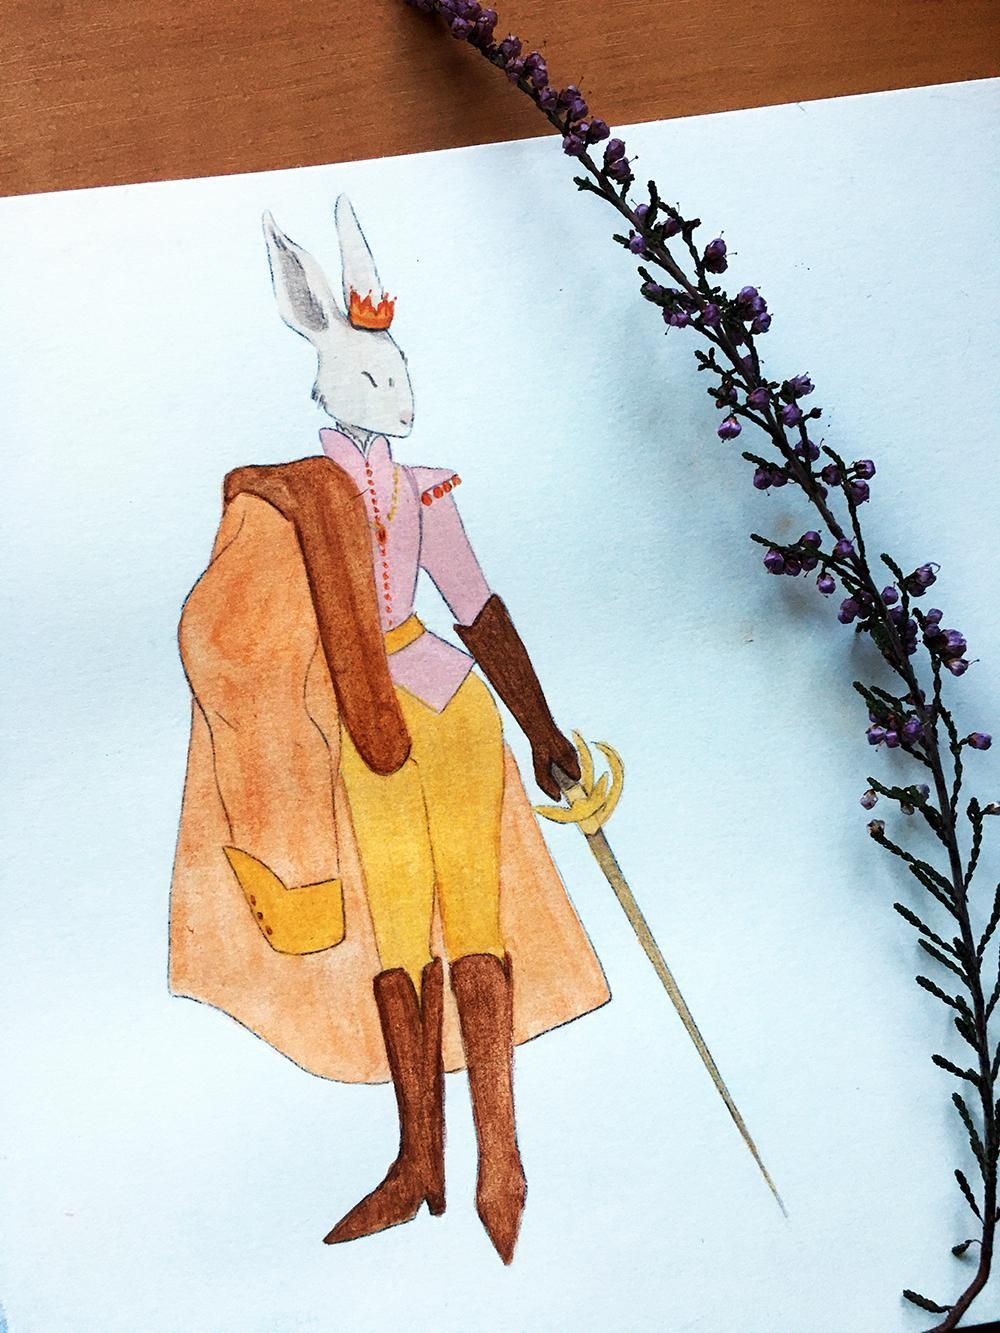 Bunny Prince - image 7 - student project